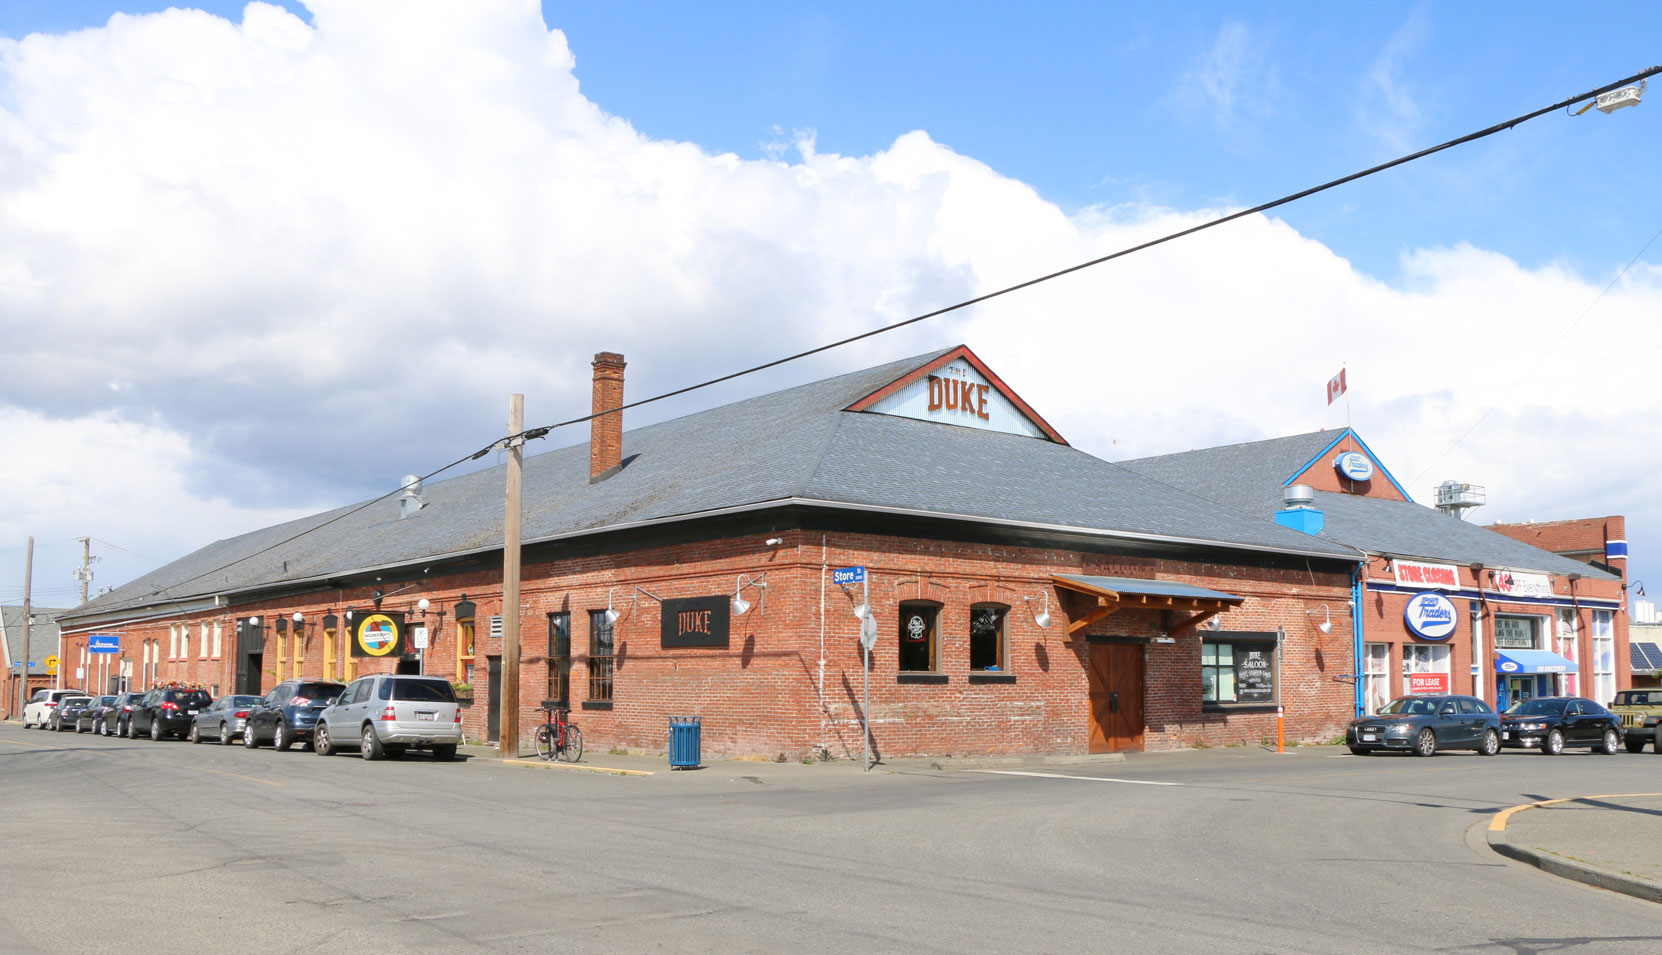 The former B.C. Electric Railway Company street car garage, built in 1901, at 502-508 Discovery Street in downtown Victoria (Photo by Author)